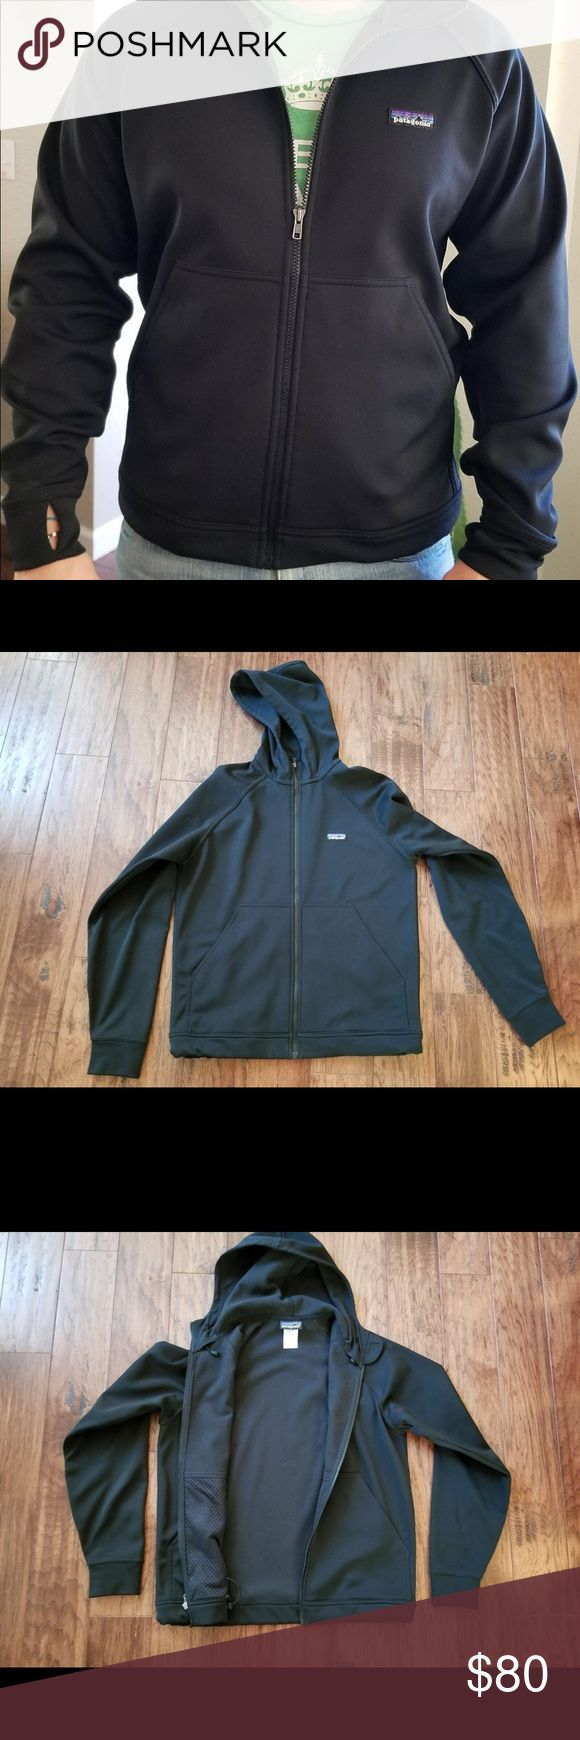 Patagonia Men's Slopestyle Hoody Men's Patagonia Slopestyle Hoody, size small. Excellent condition, no rips, or tears. No pets, non-smoking home. Retails at $129, selling for $80. Patagonia Jackets & Coats